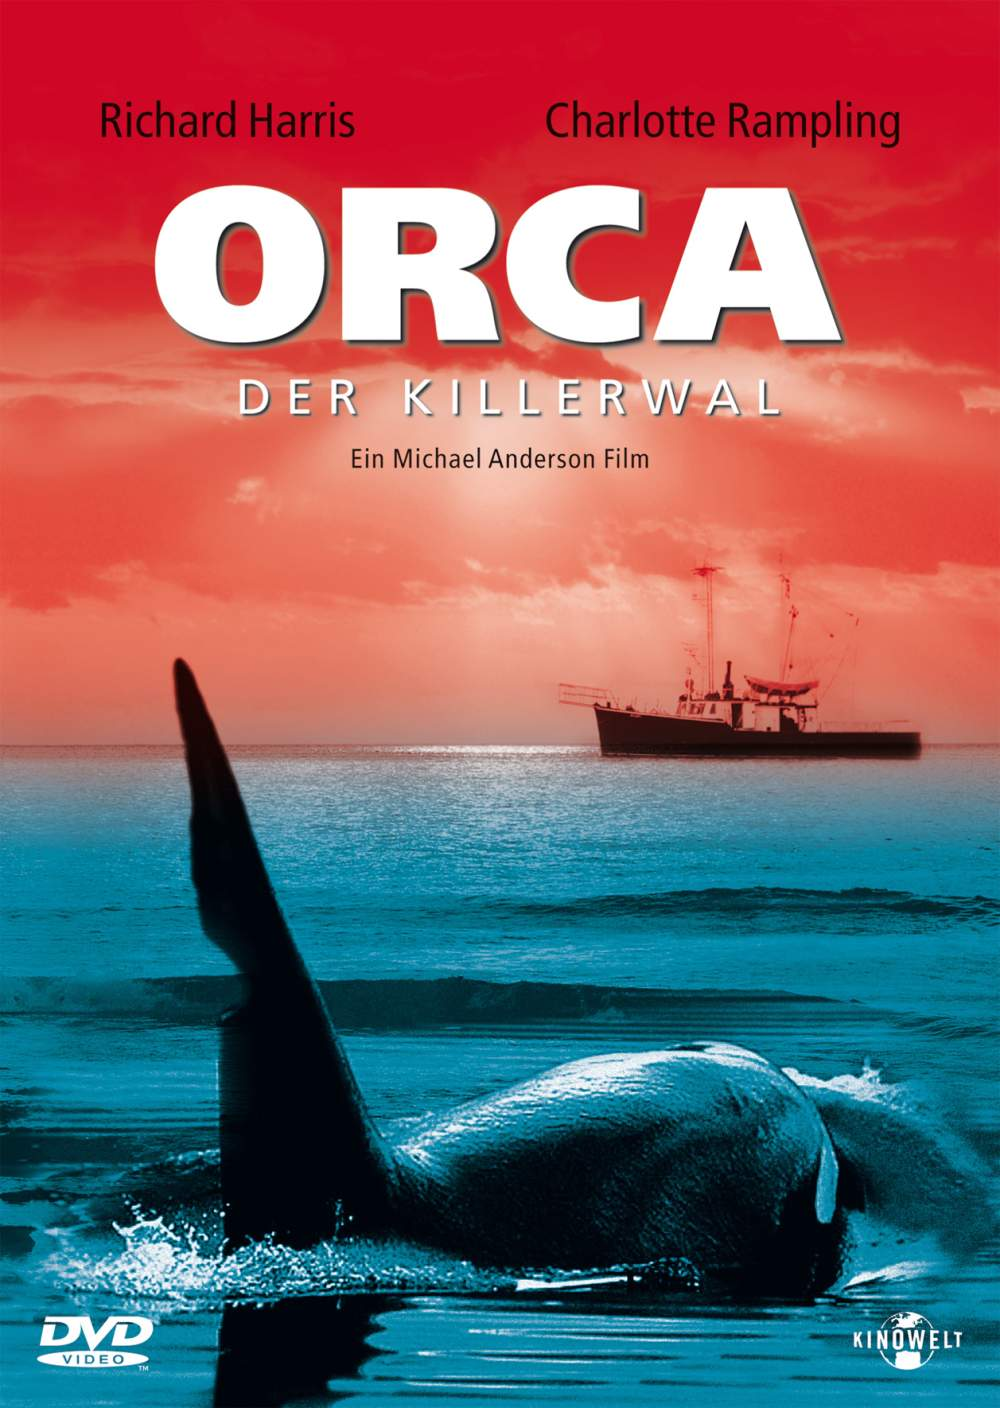 Orca the killer whale movie - photo#5